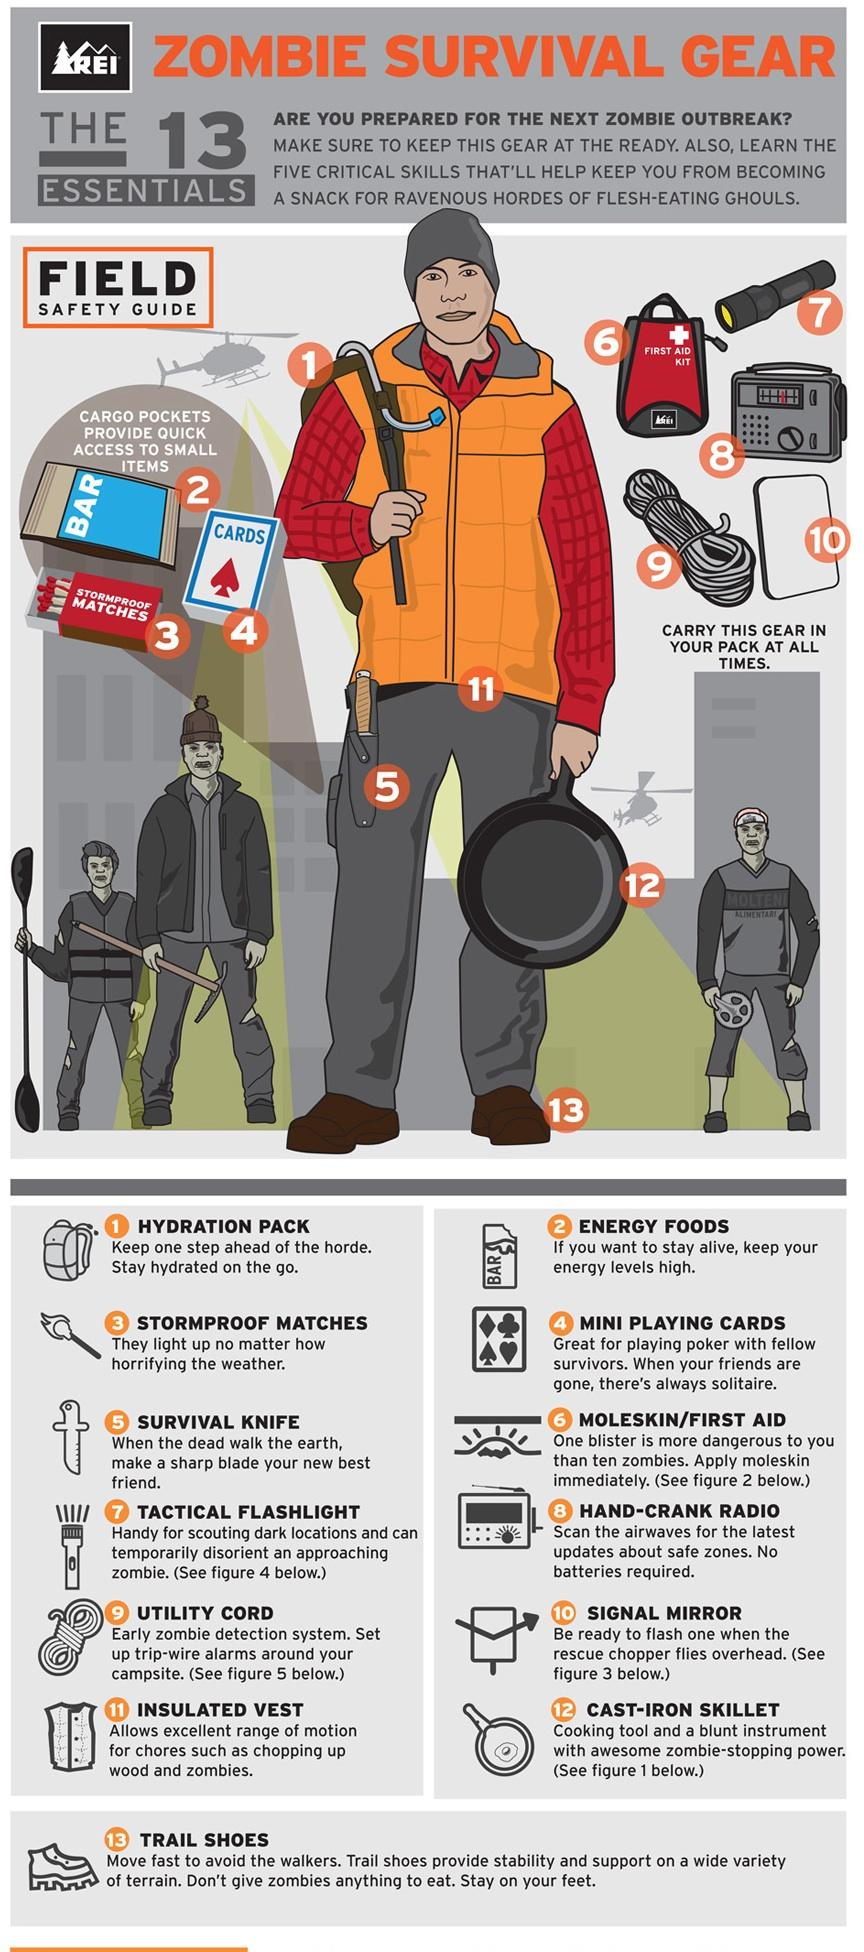 How To Survive A Zombie Apocalypse: Have An Emergency Kit Ready